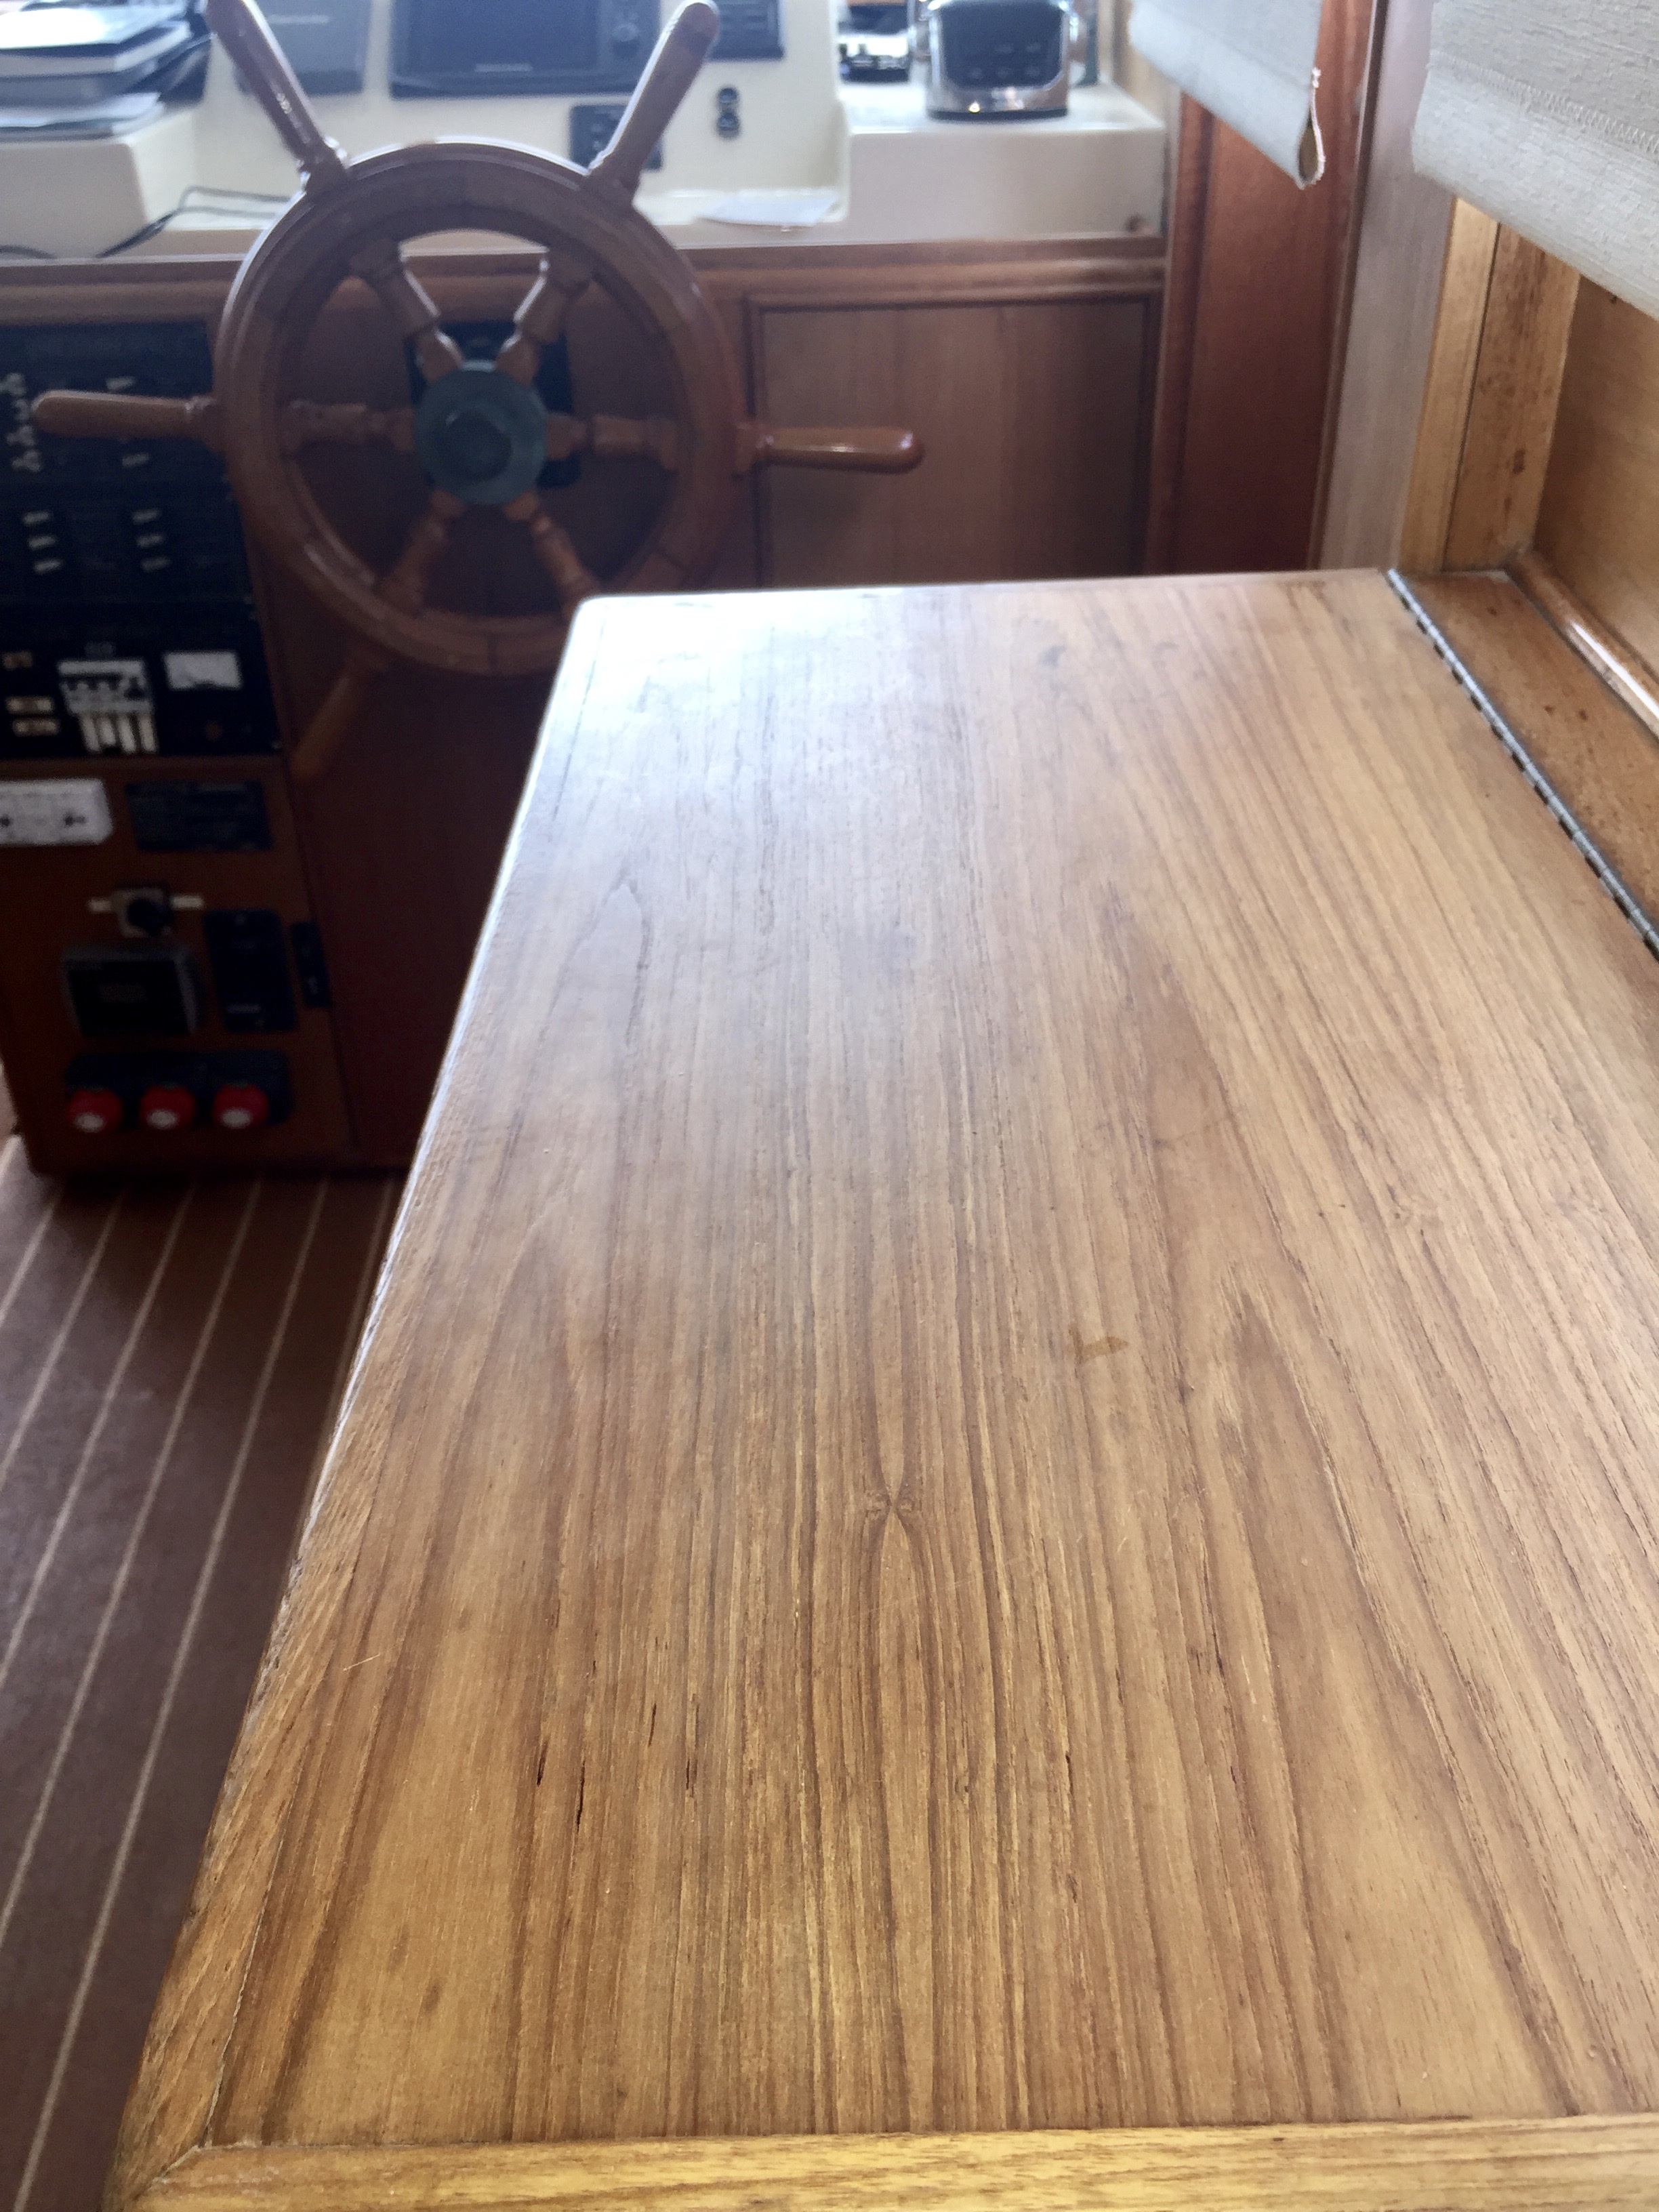 Interior wood after sanding and coat of wood stain